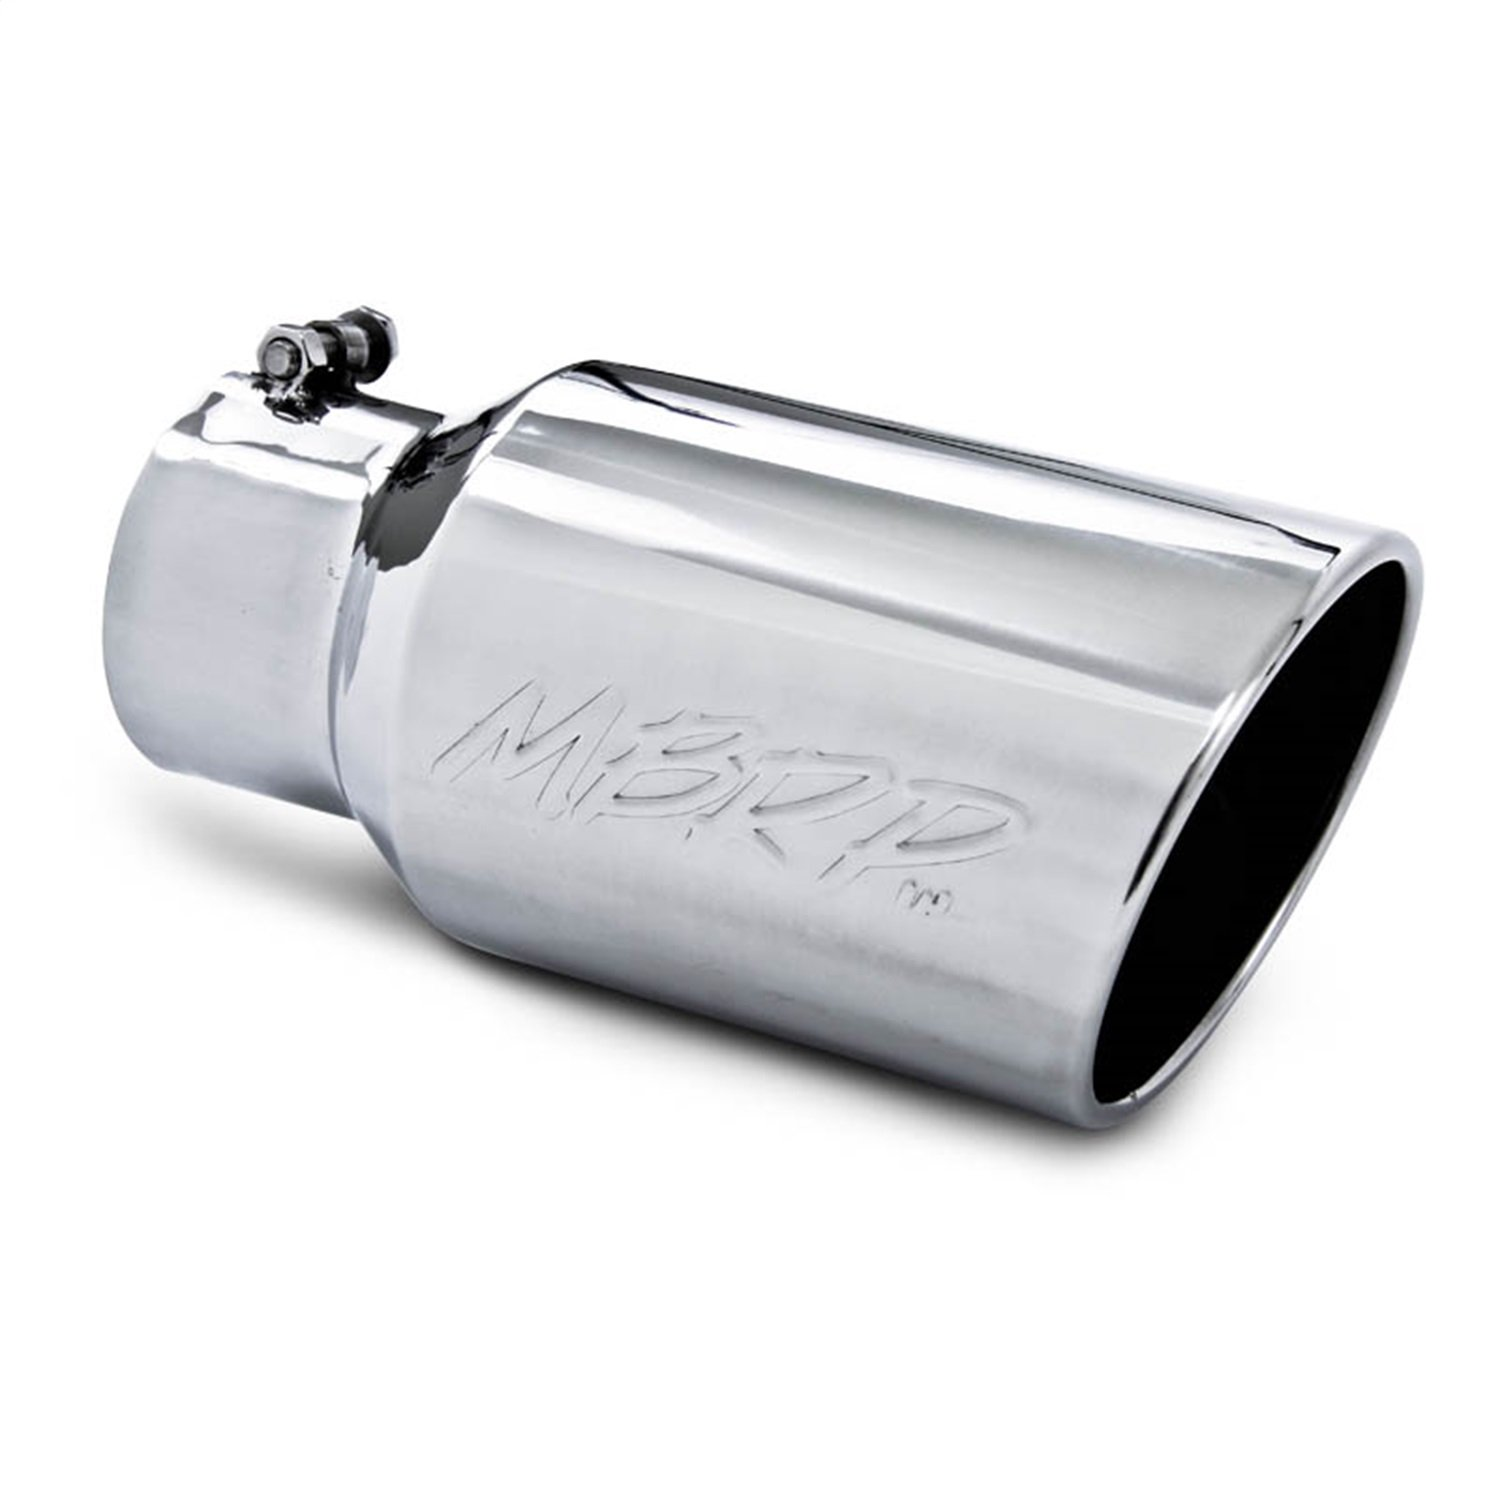 MBRP T5073 6'' O.D. Angled Rolled Exhaust Tip (T304) by MBRP (Image #1)